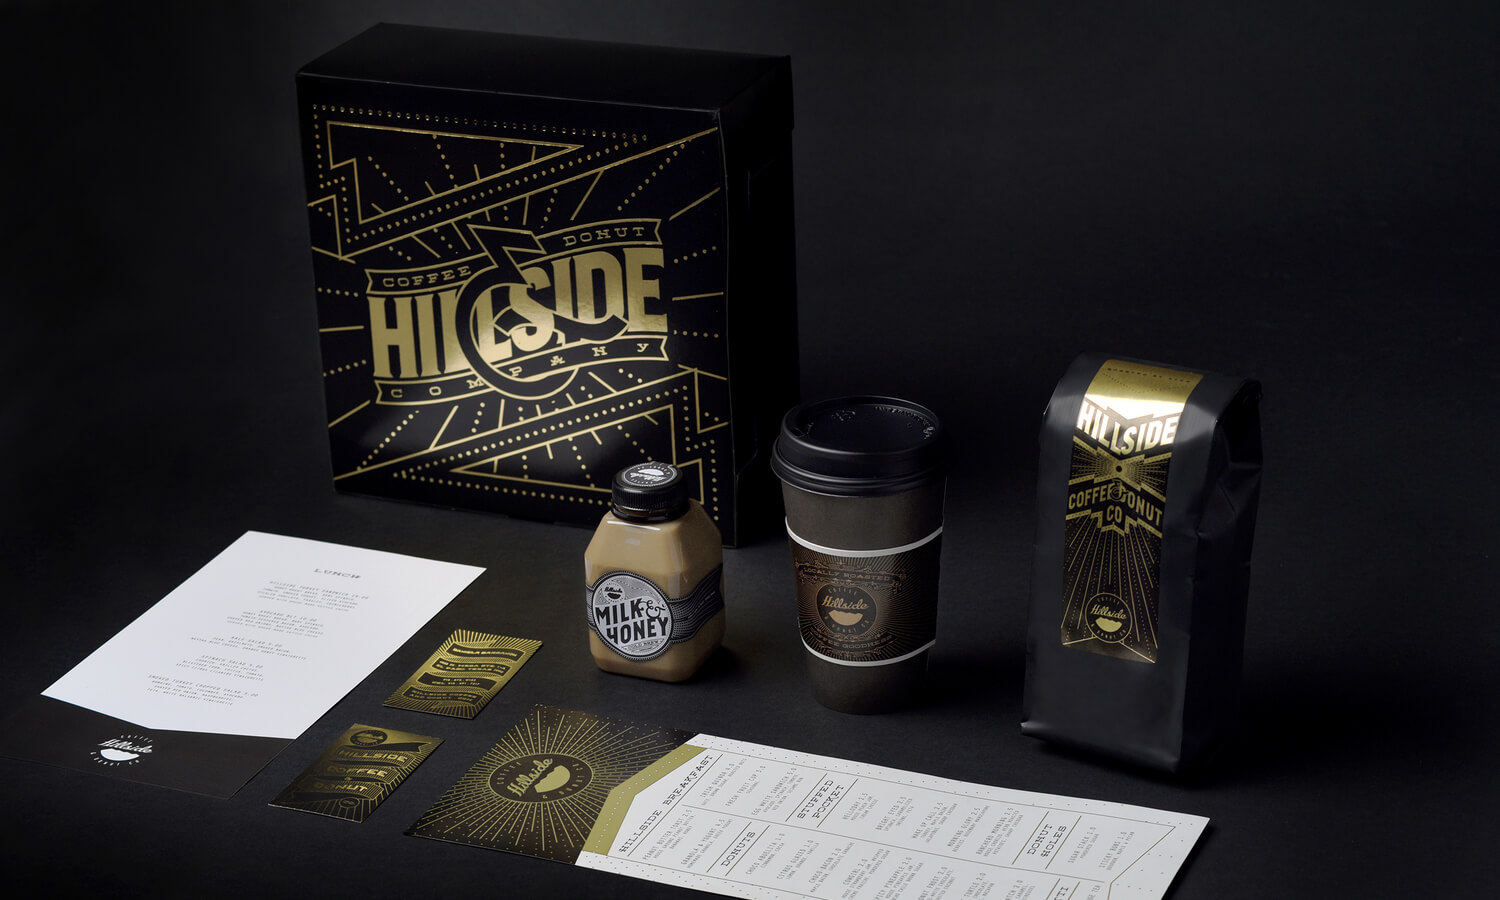 Hillside Made By Eme Design Studio